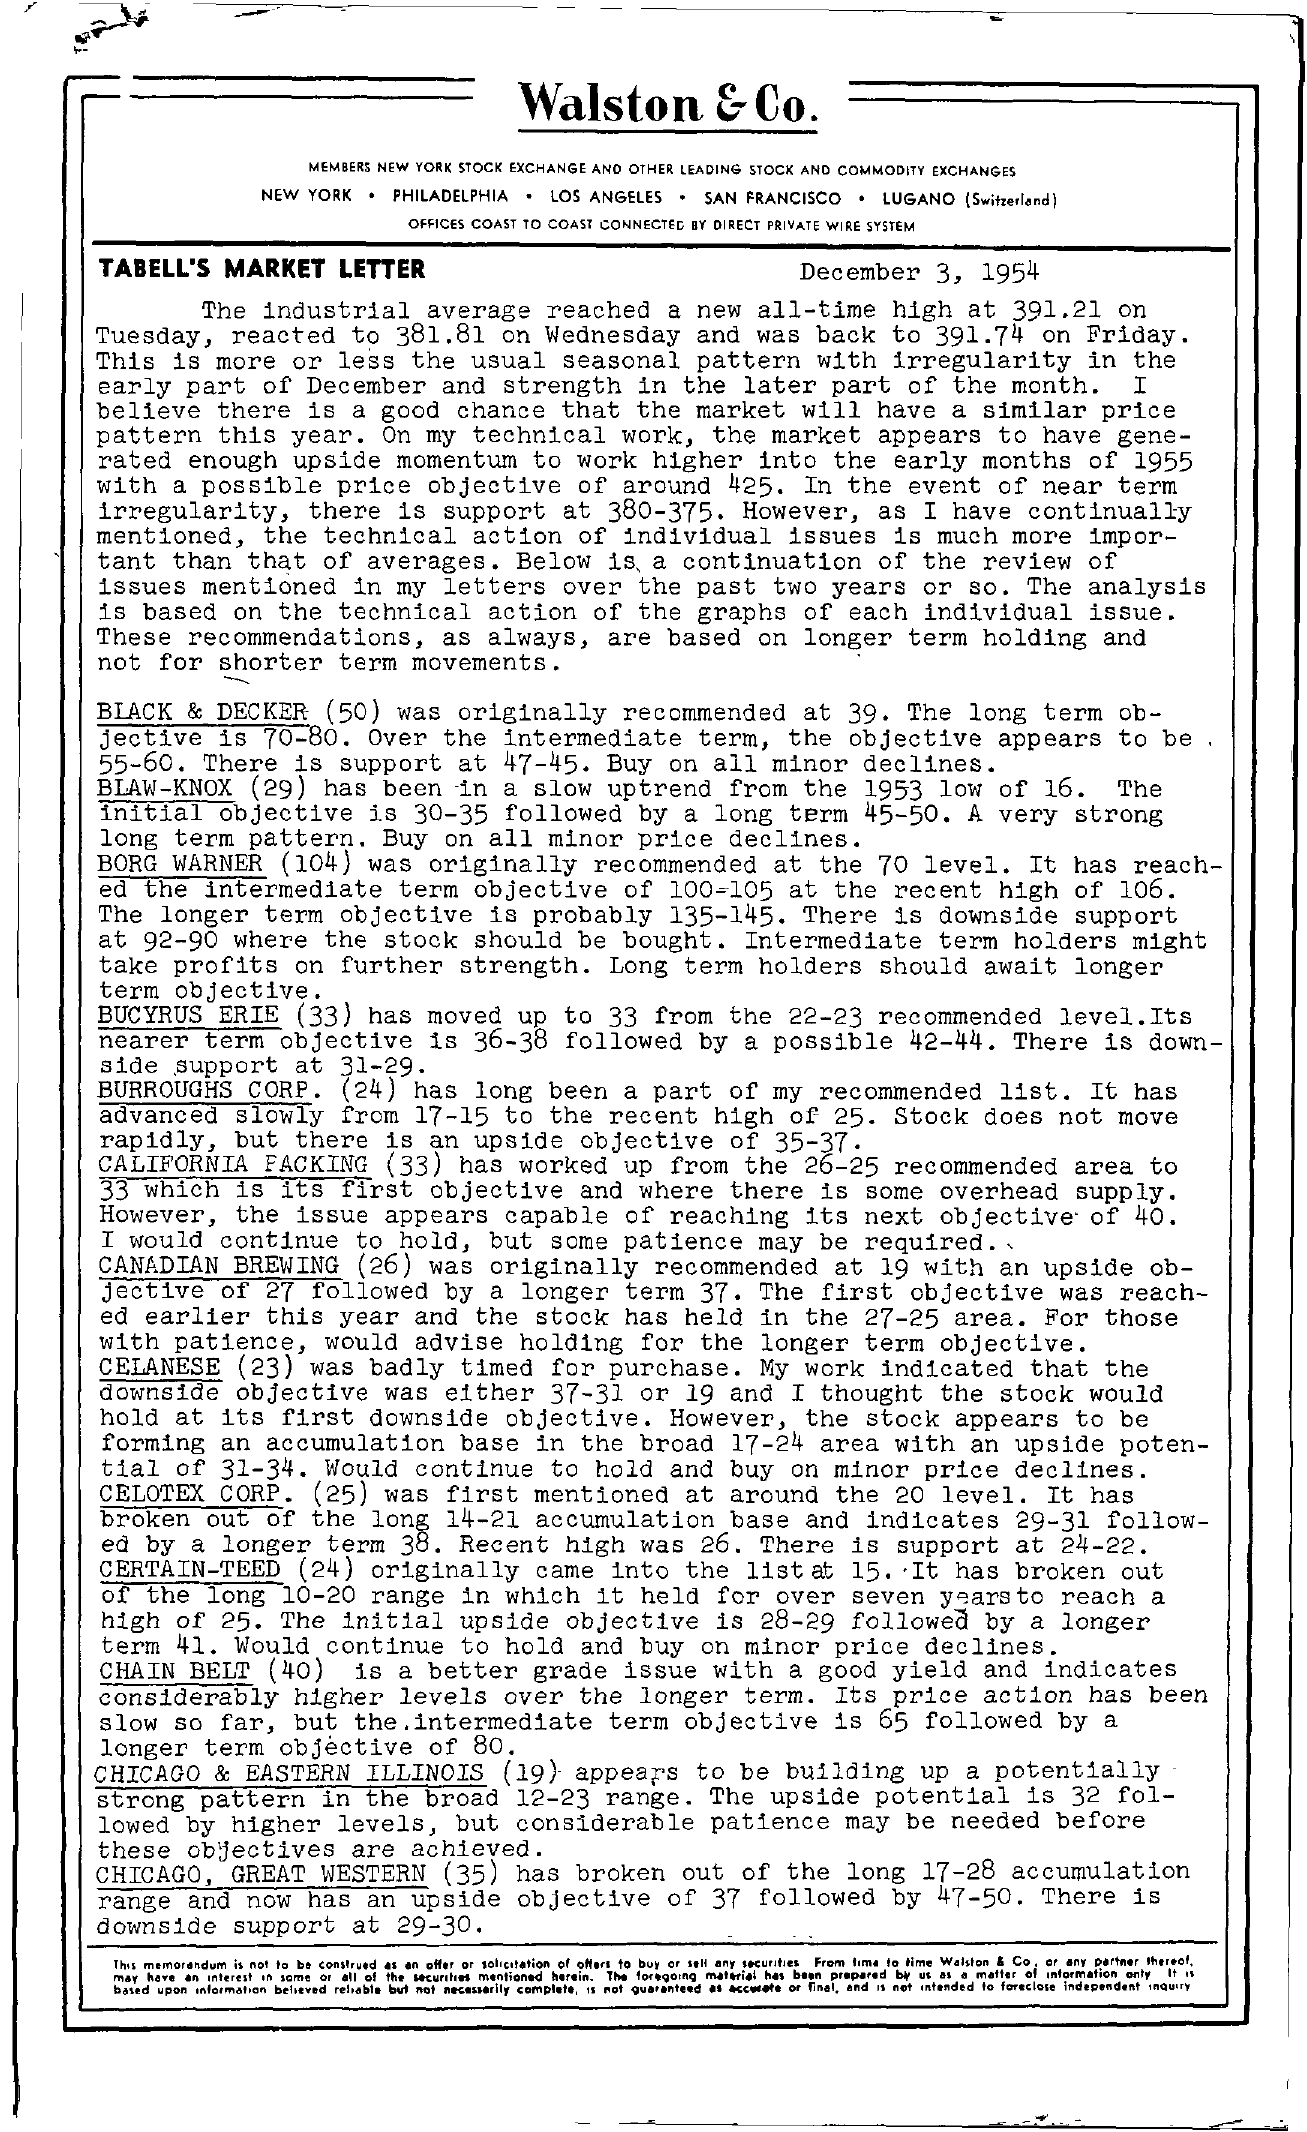 Tabell's Market Letter - December 03, 1954 page 1